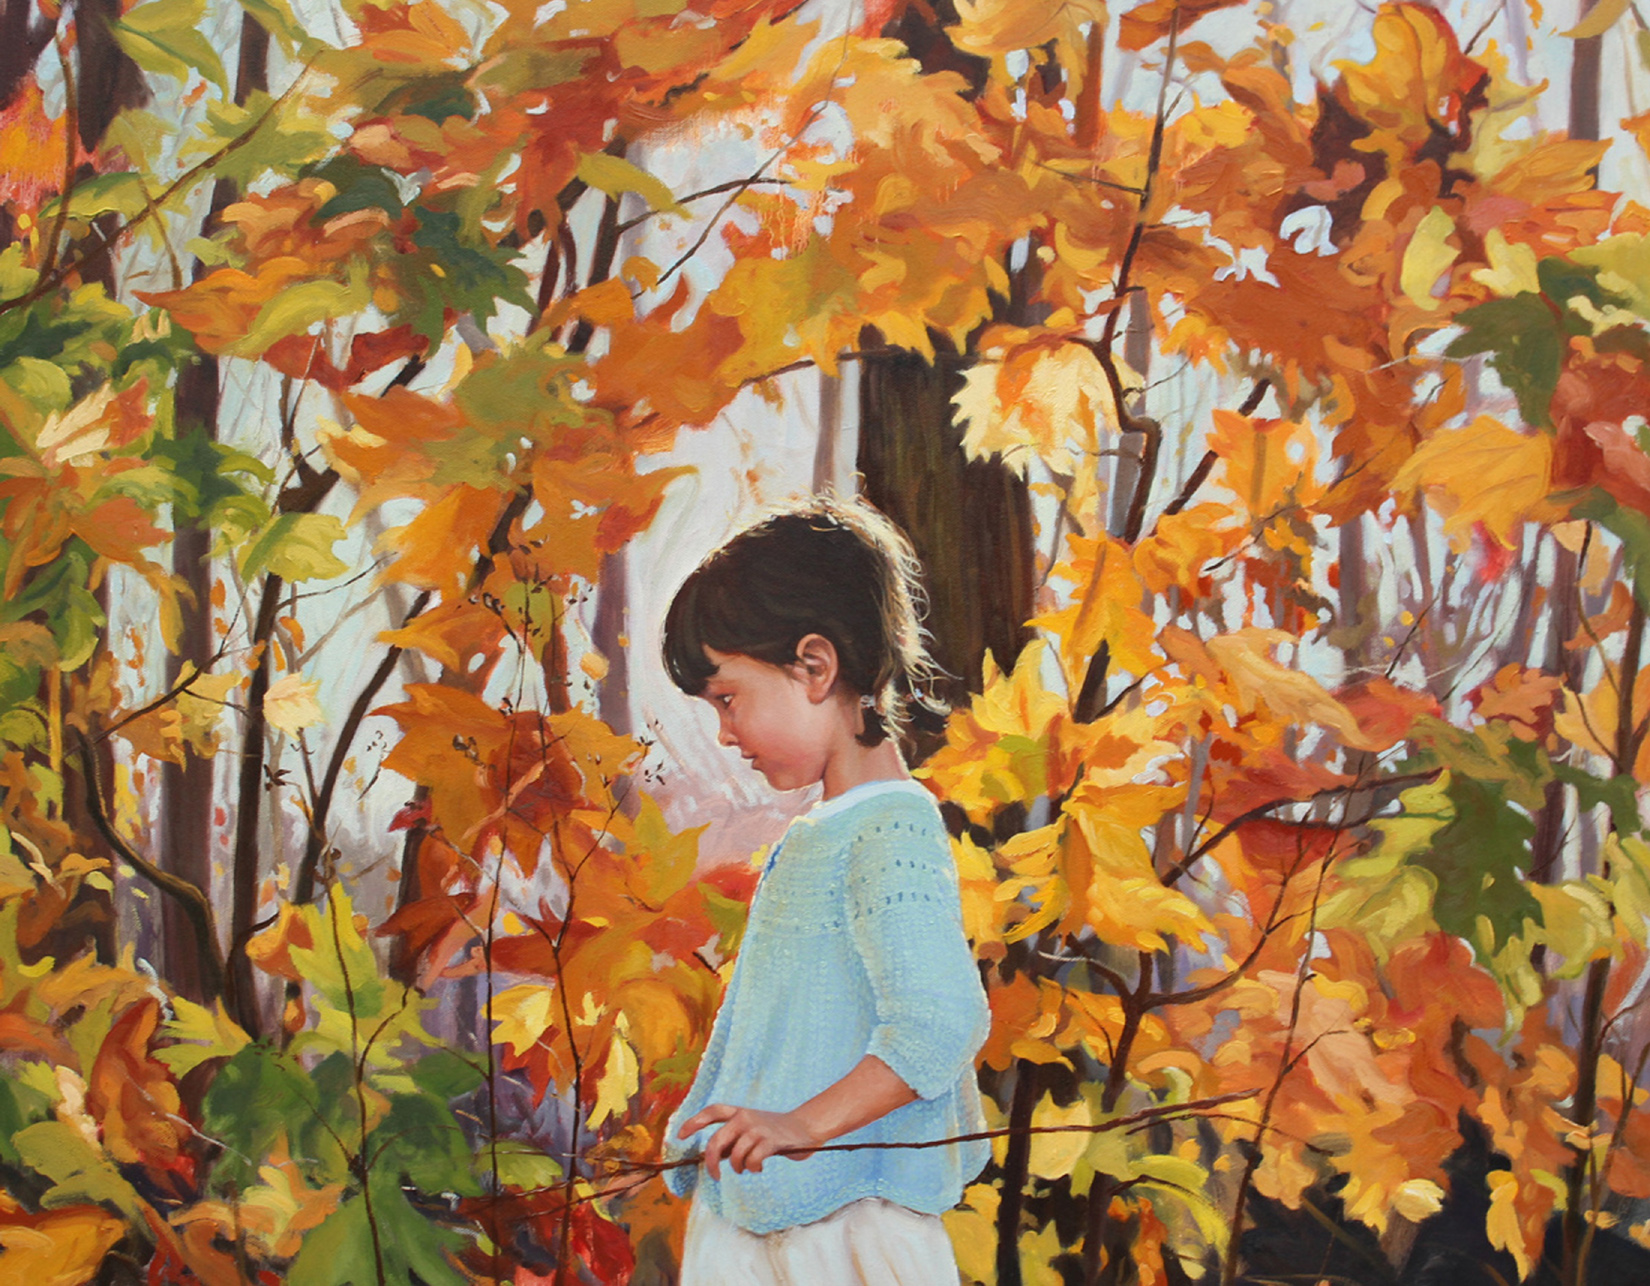 Autumn by Sarah Pogue